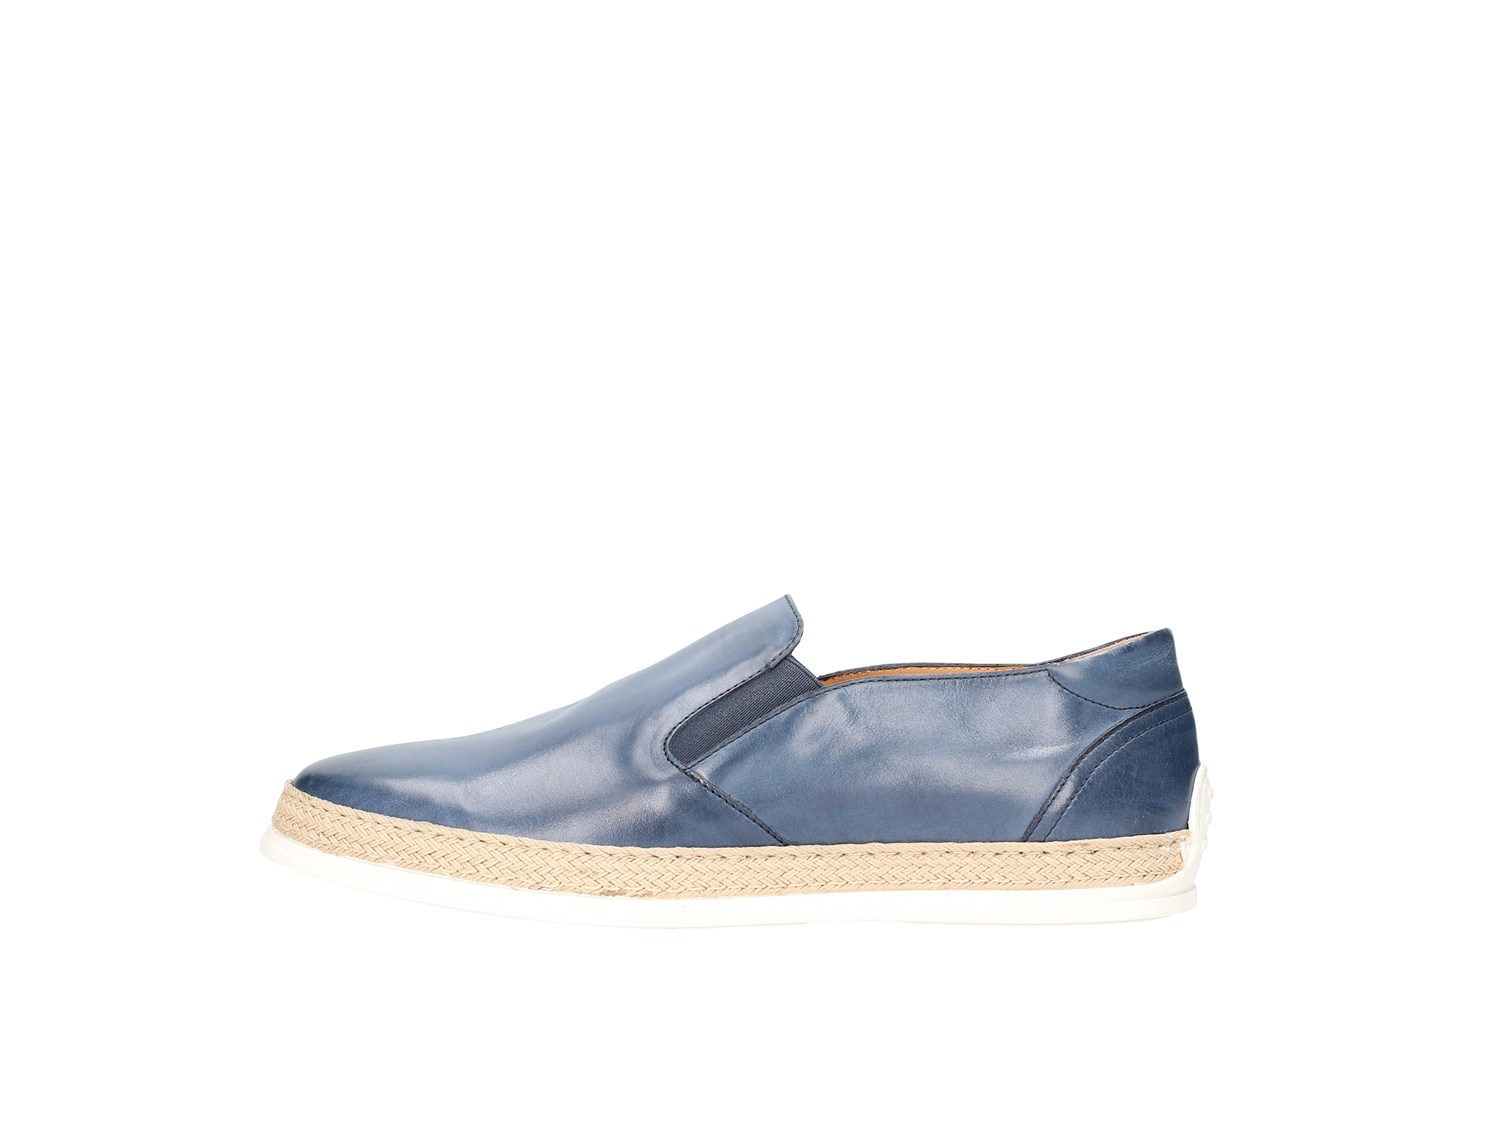 Triver Flight 997-01 Blue Shoes Man Slip-on